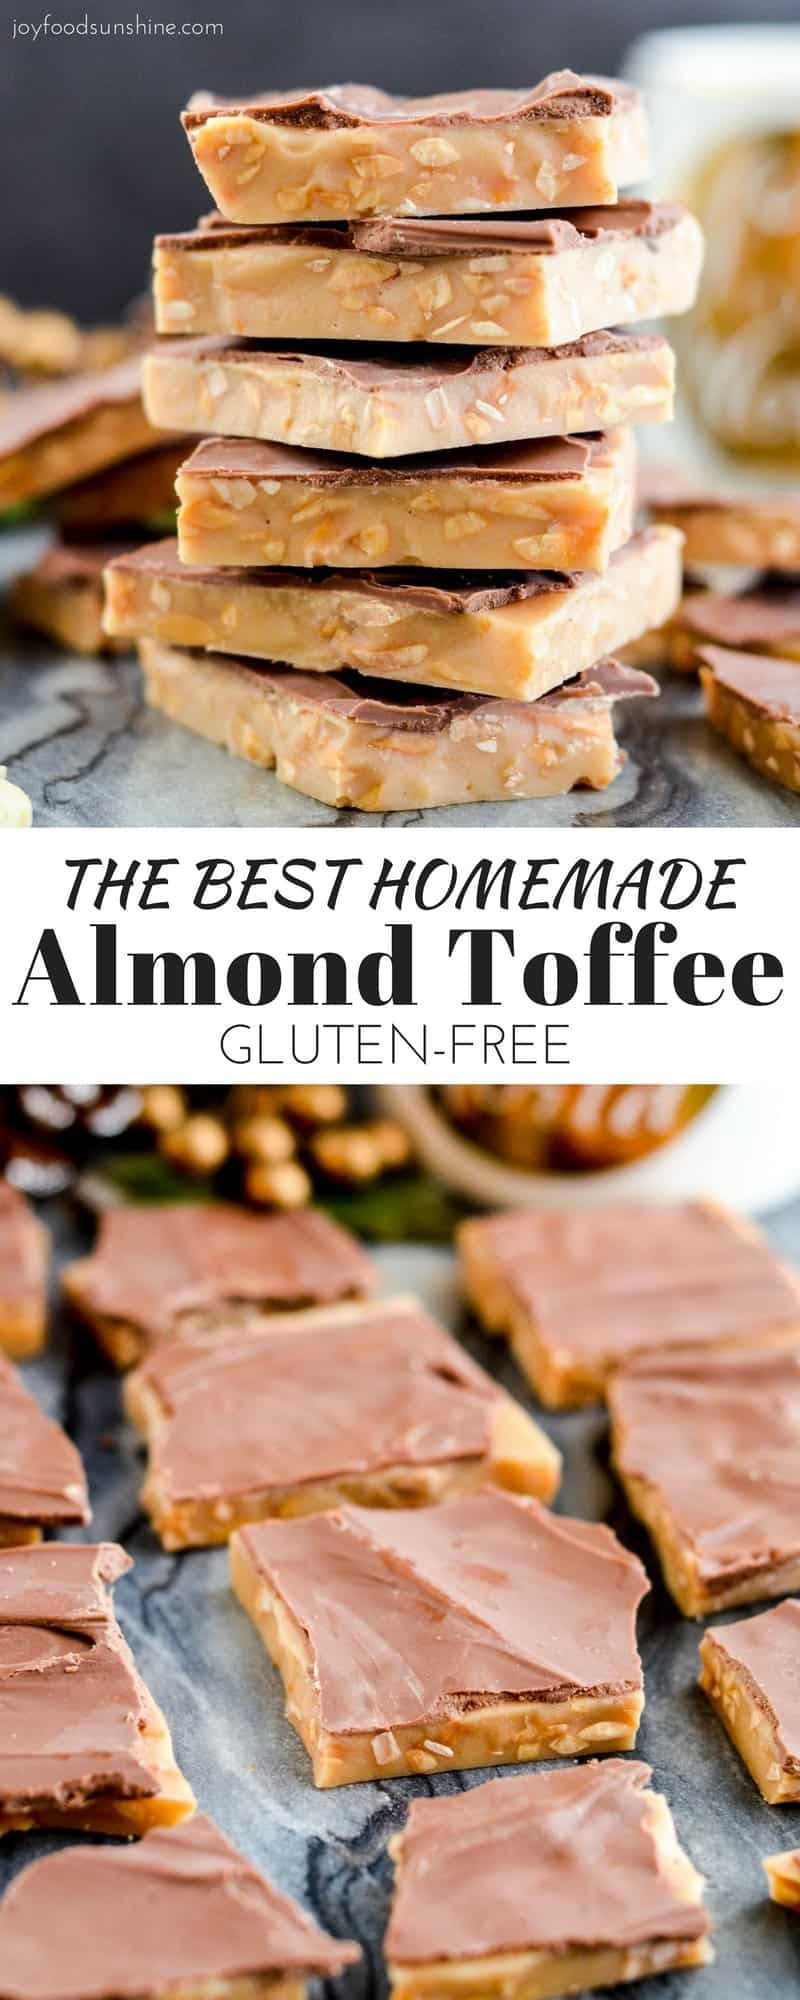 The best Homemade Almond Toffee ever! Only 8 ingredients make this delicious holiday treat that is naturally gluten-free! Perfect to give as gifts to your neighbors and friends!